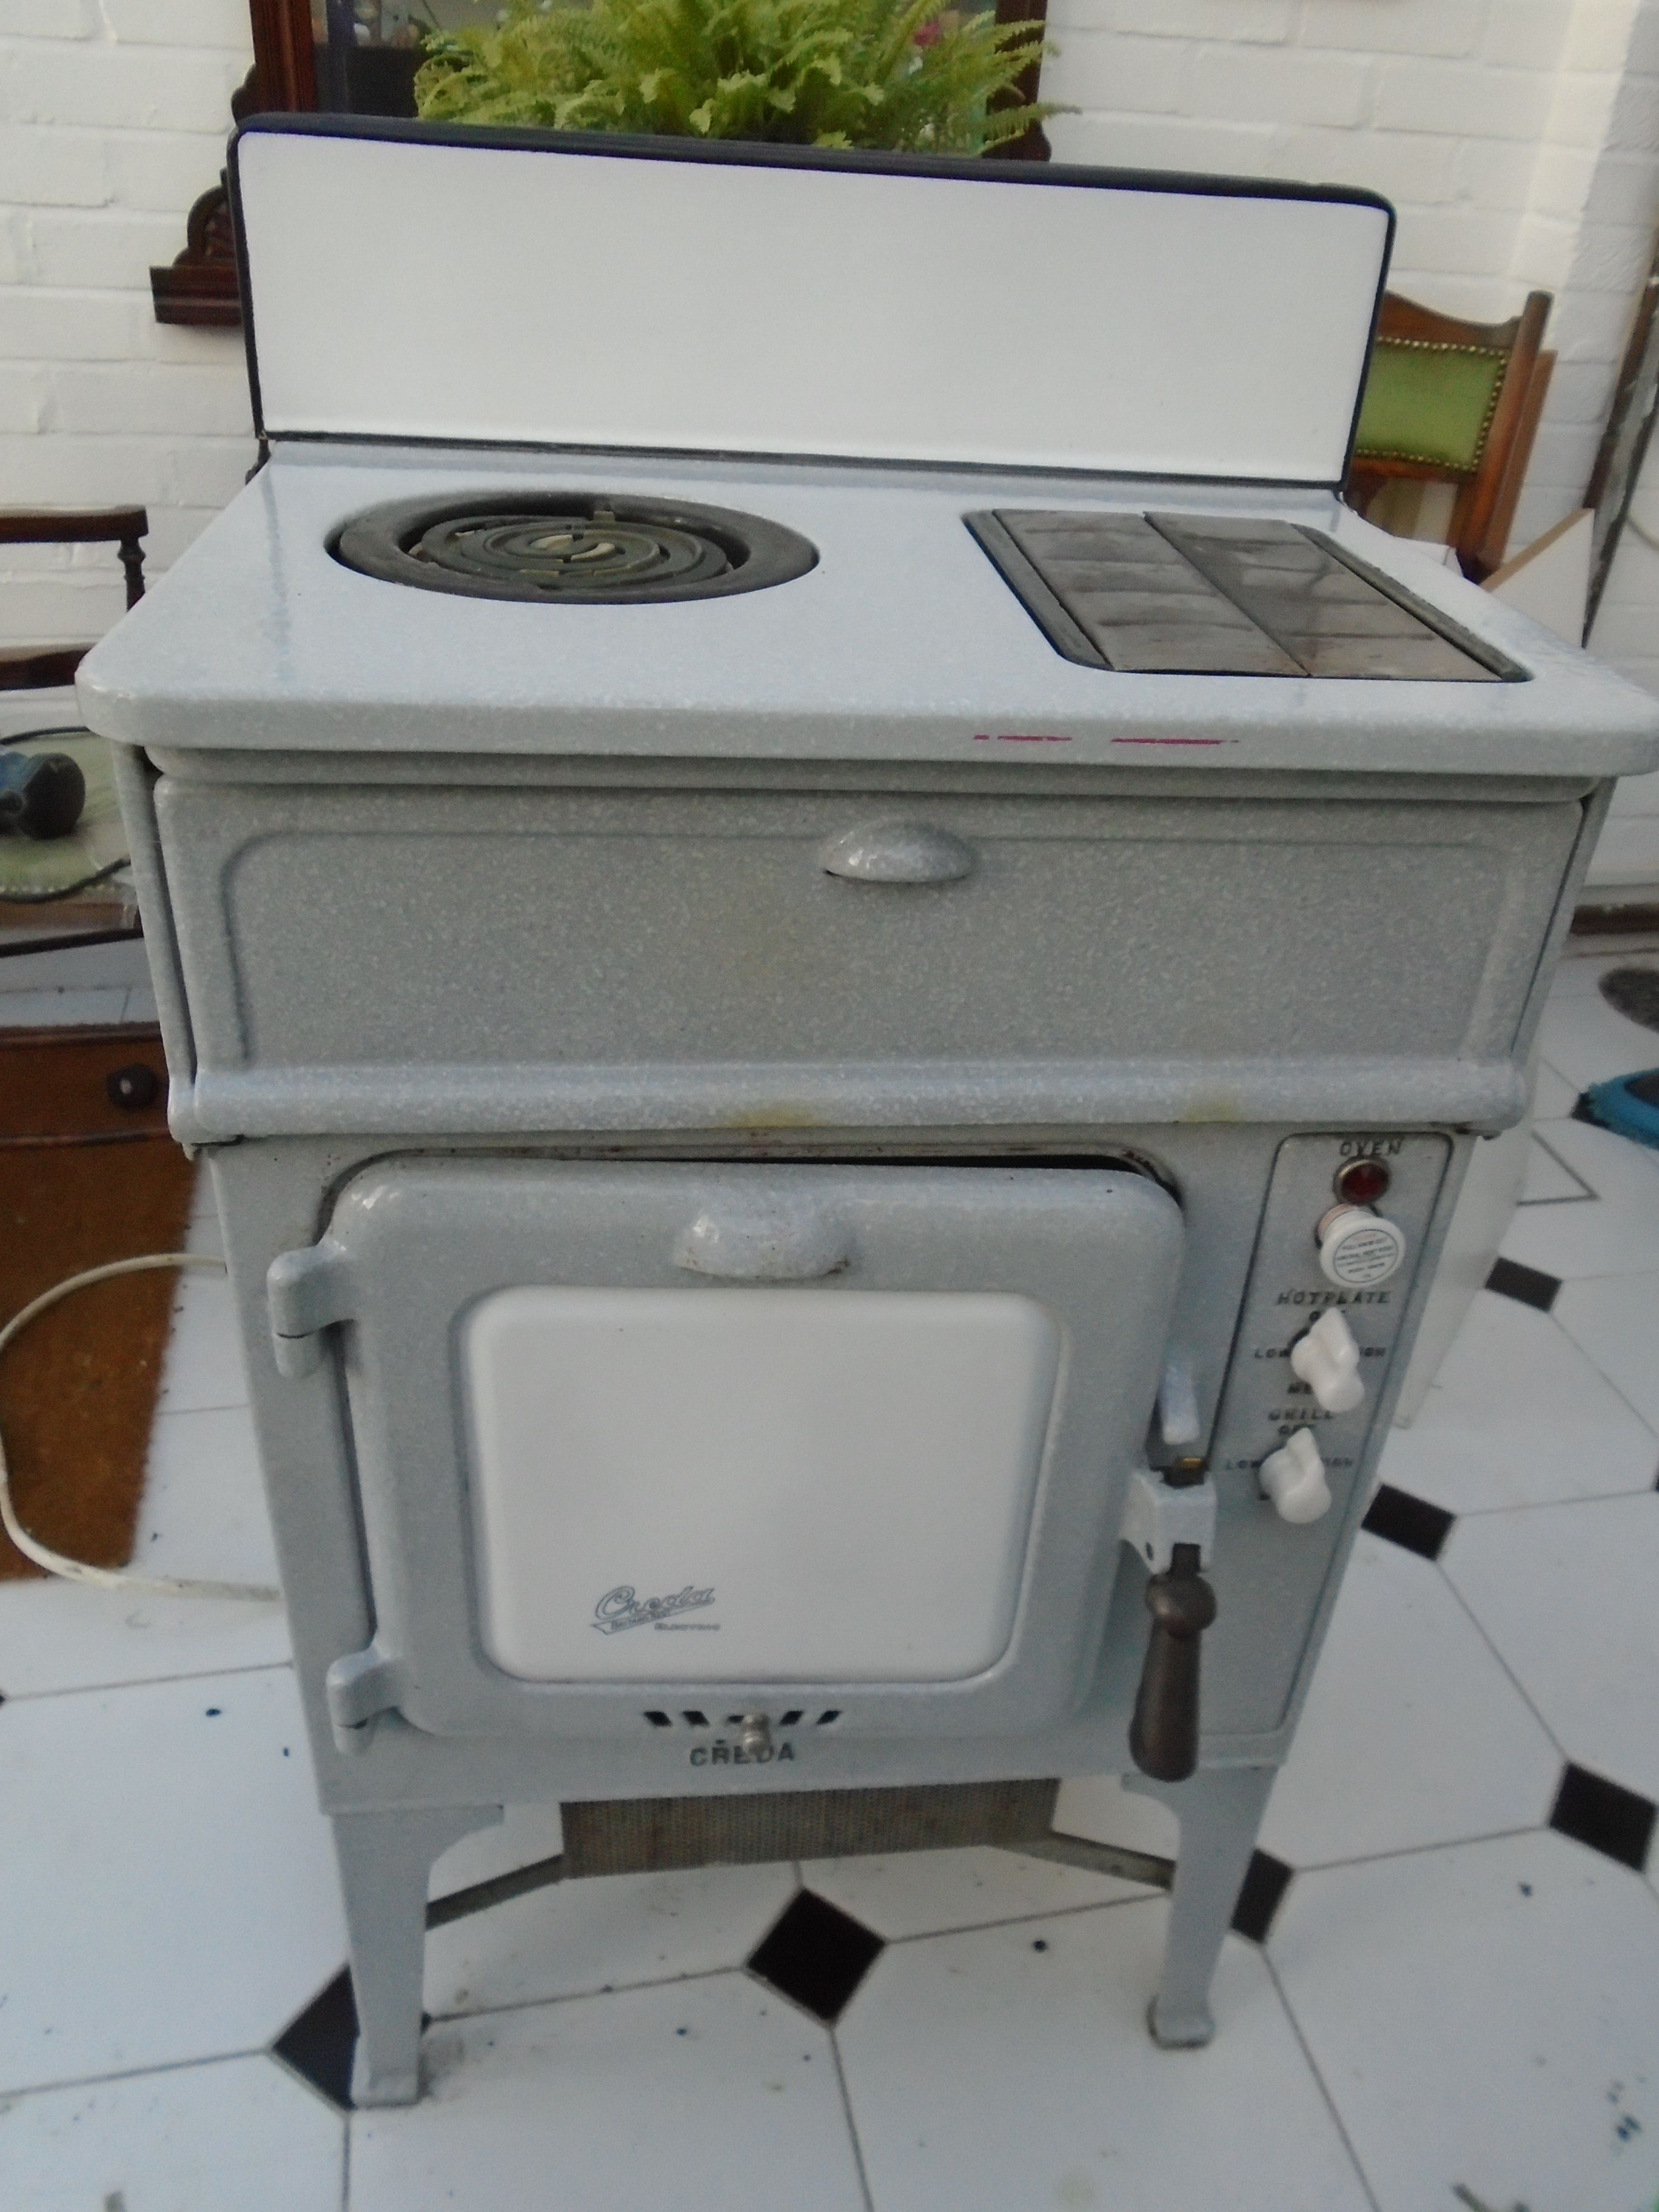 My vintage Creda electric cooker seems to have scrubbed up quite ...